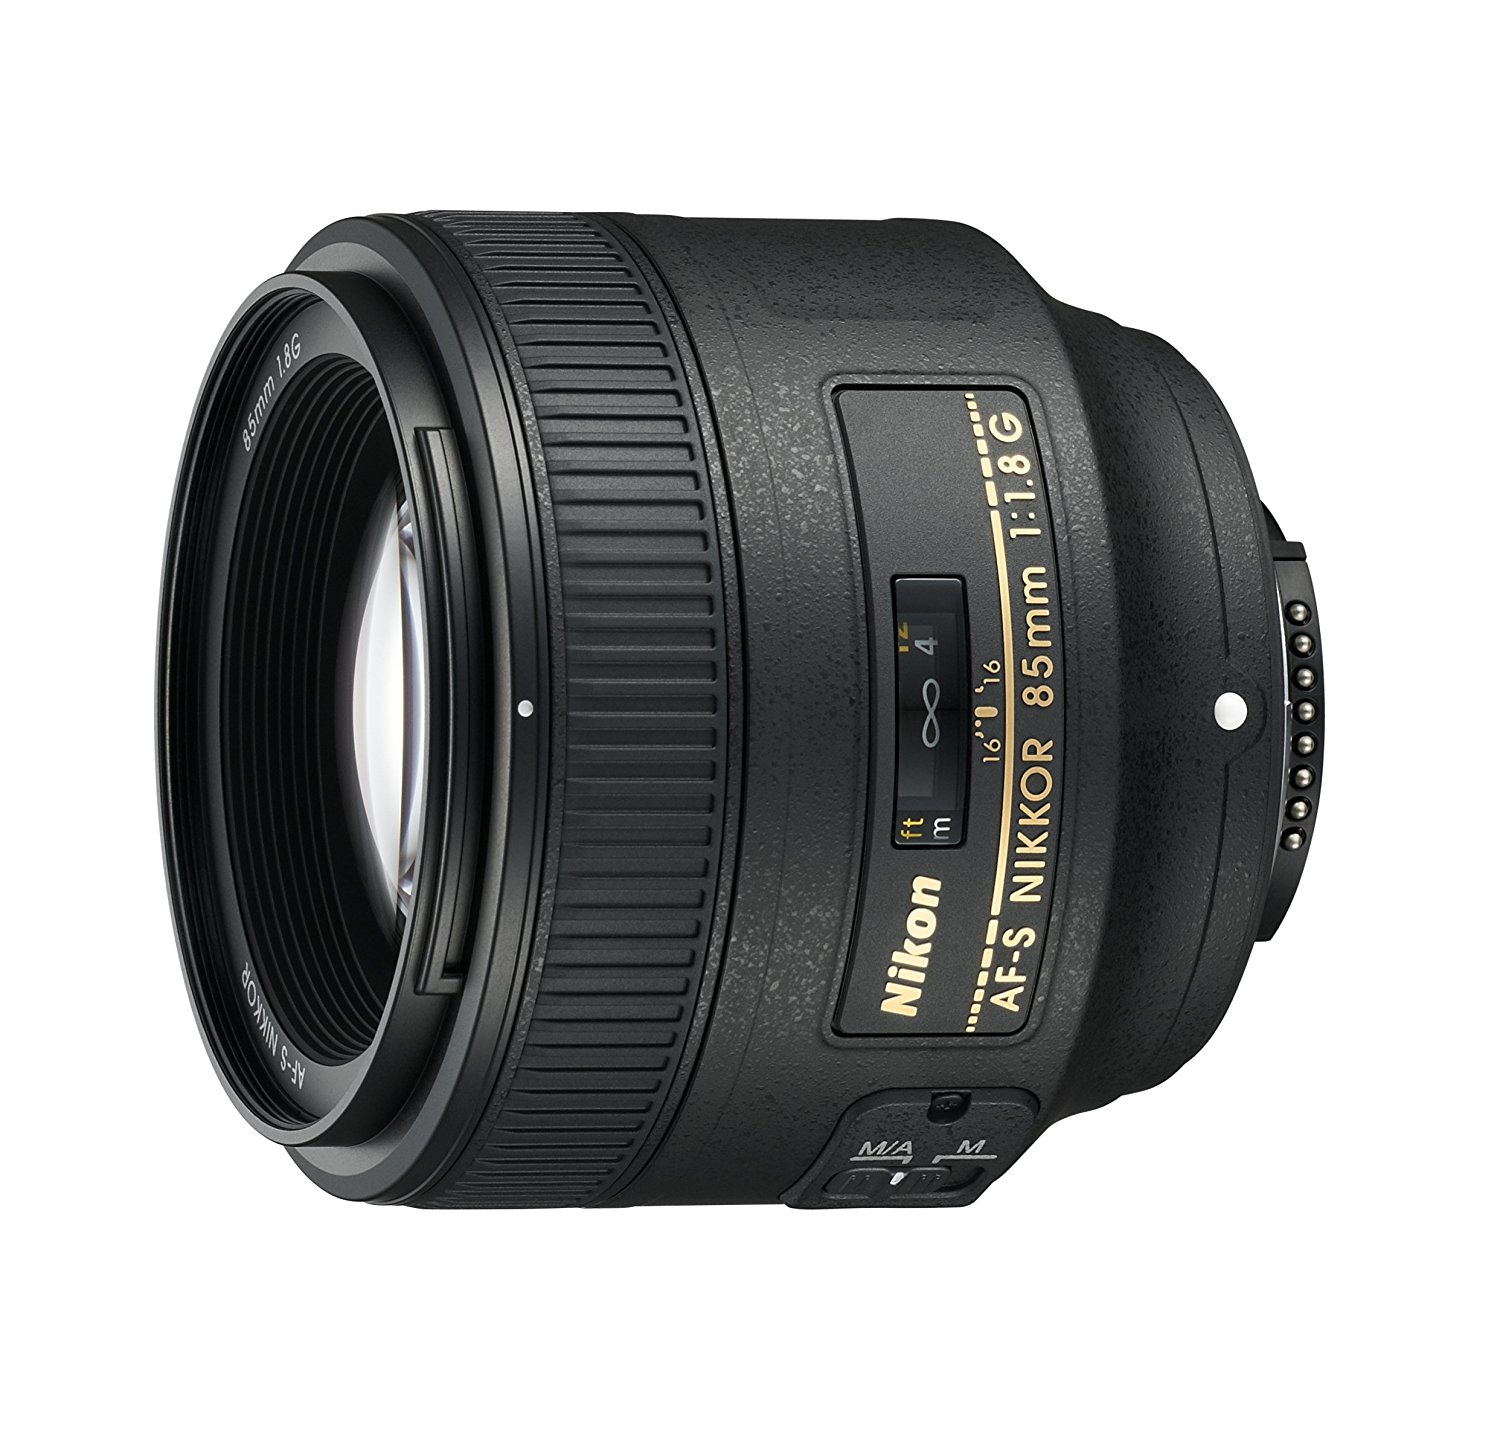 nikkor 85mm lens for nikon